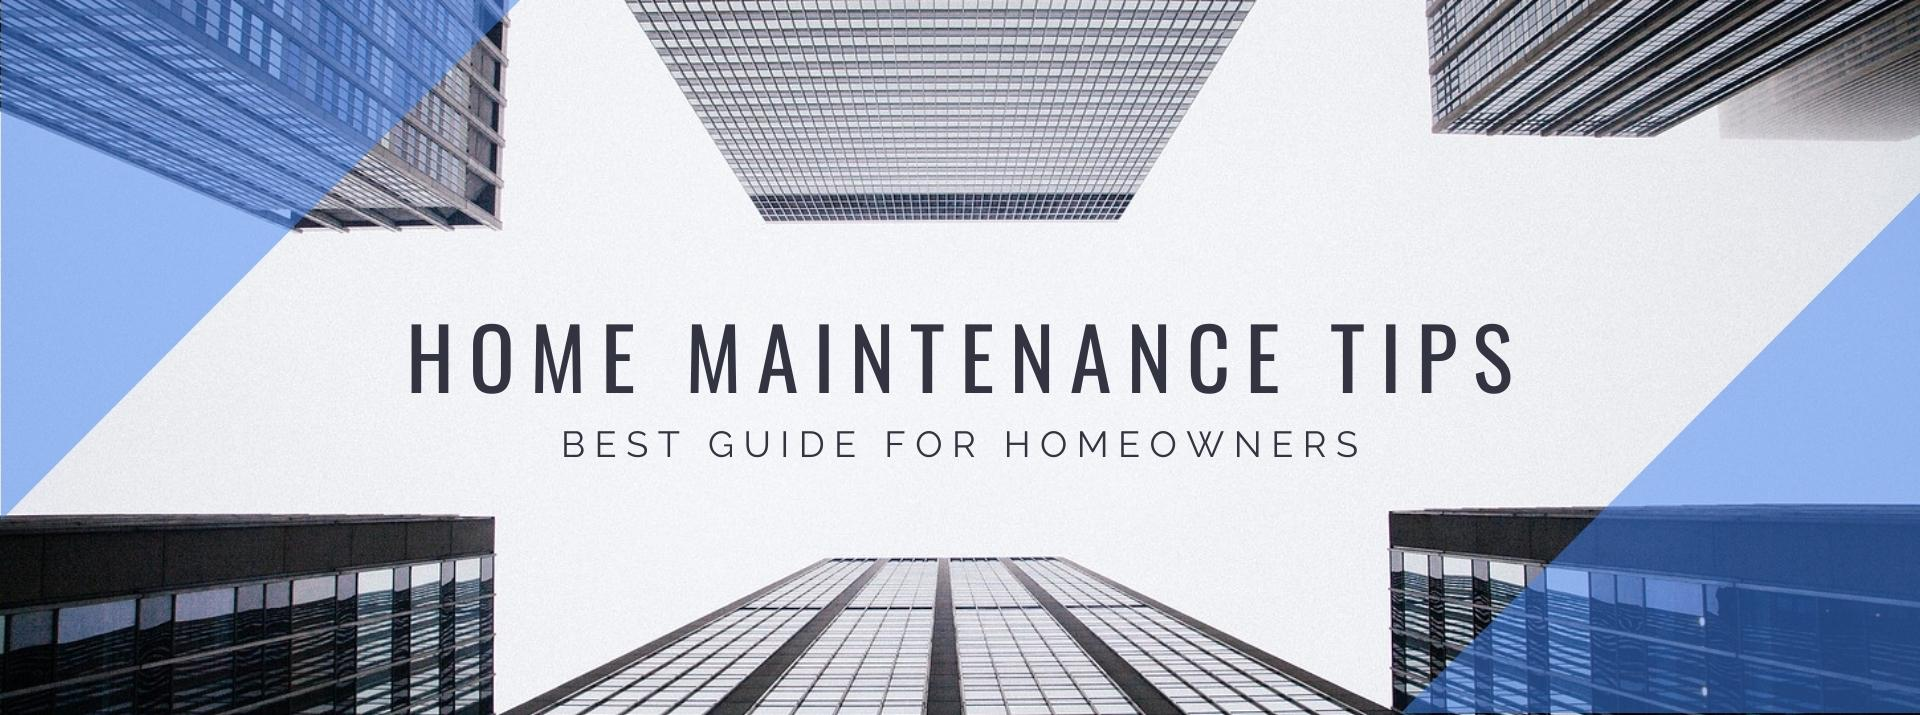 Home Maintenance Tips for Homeowners